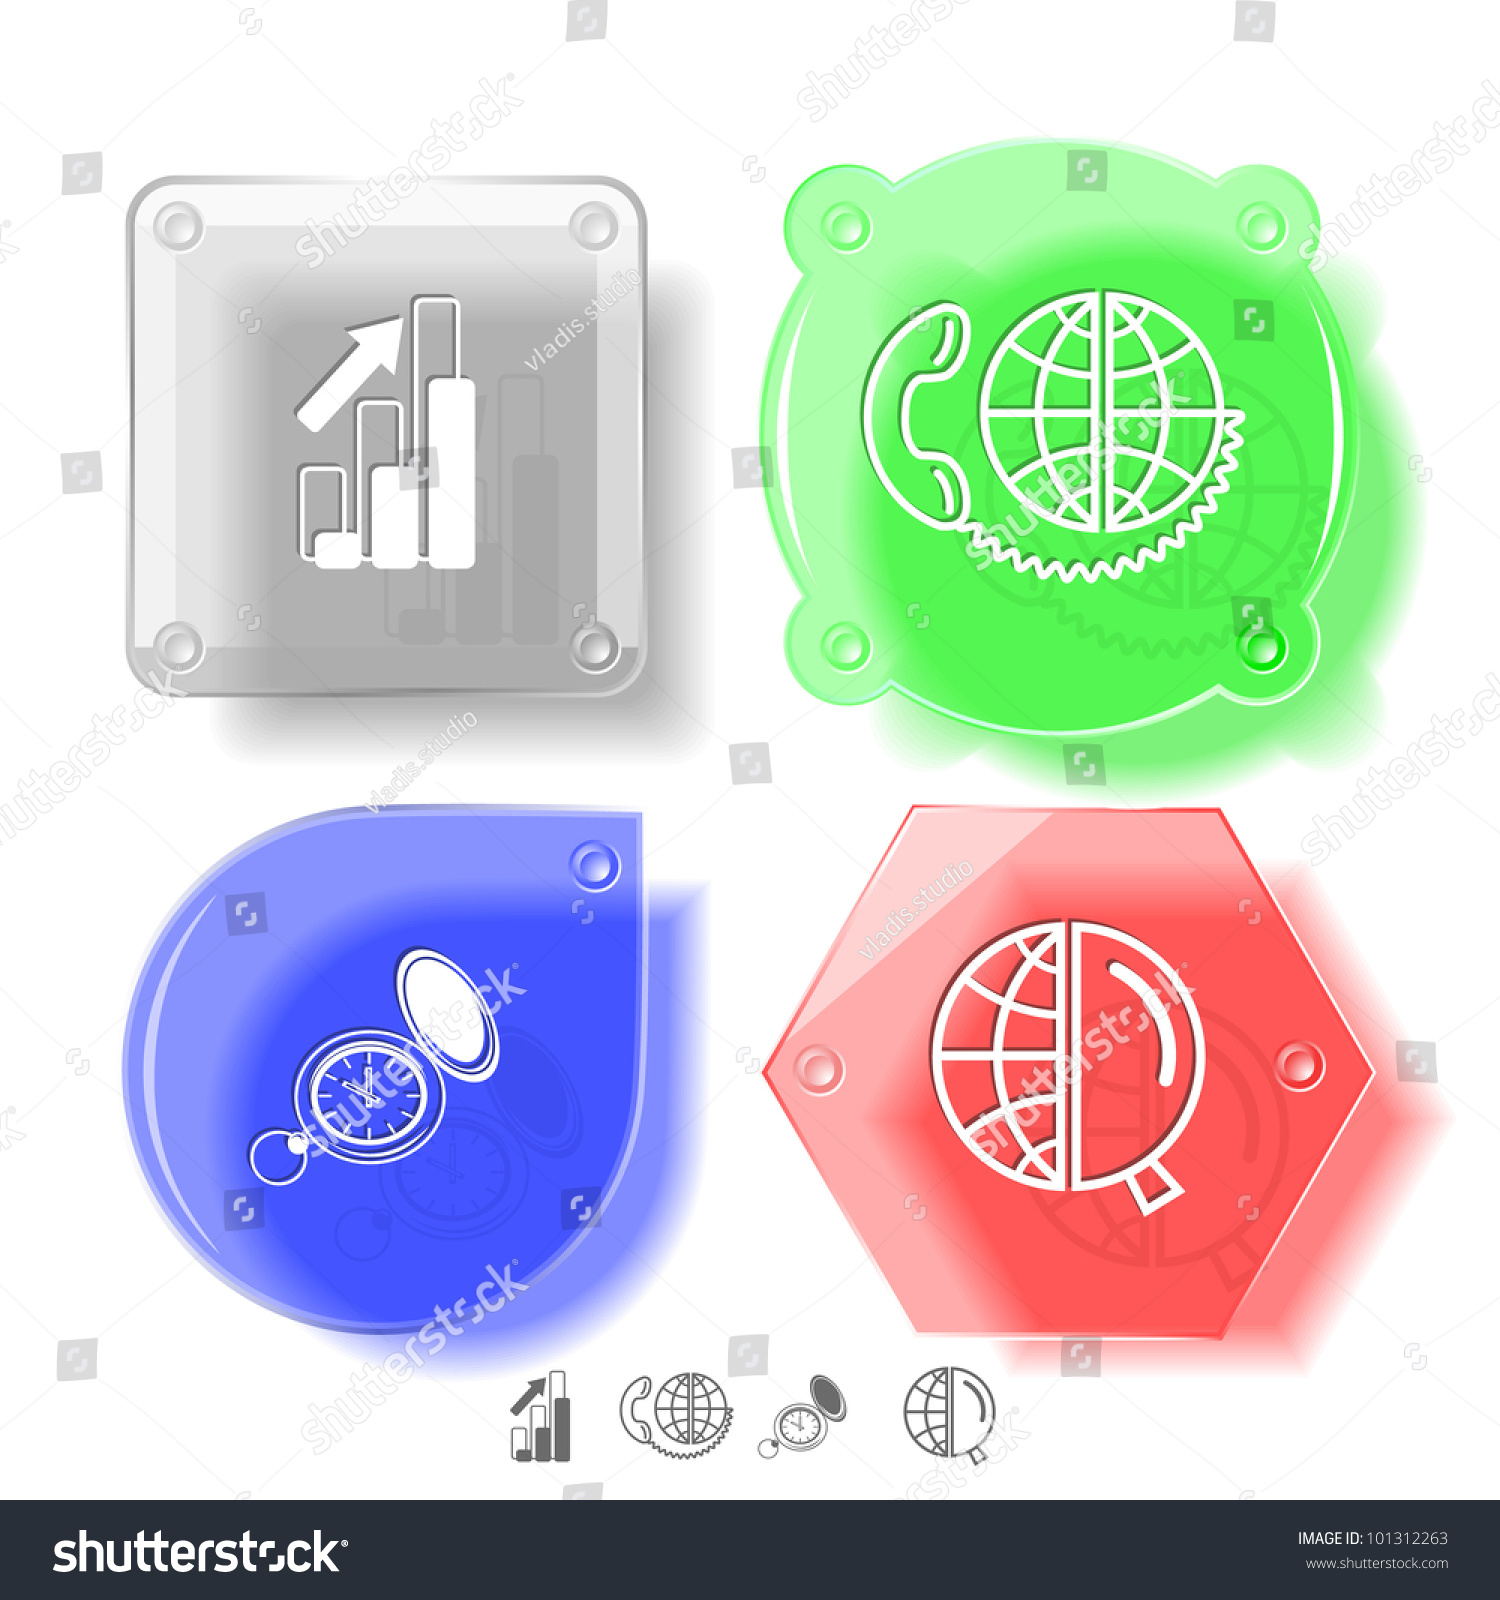 Business Icon Set  Global Communication  Watch  Globe And Magnifying Glass  Diagram  Glass